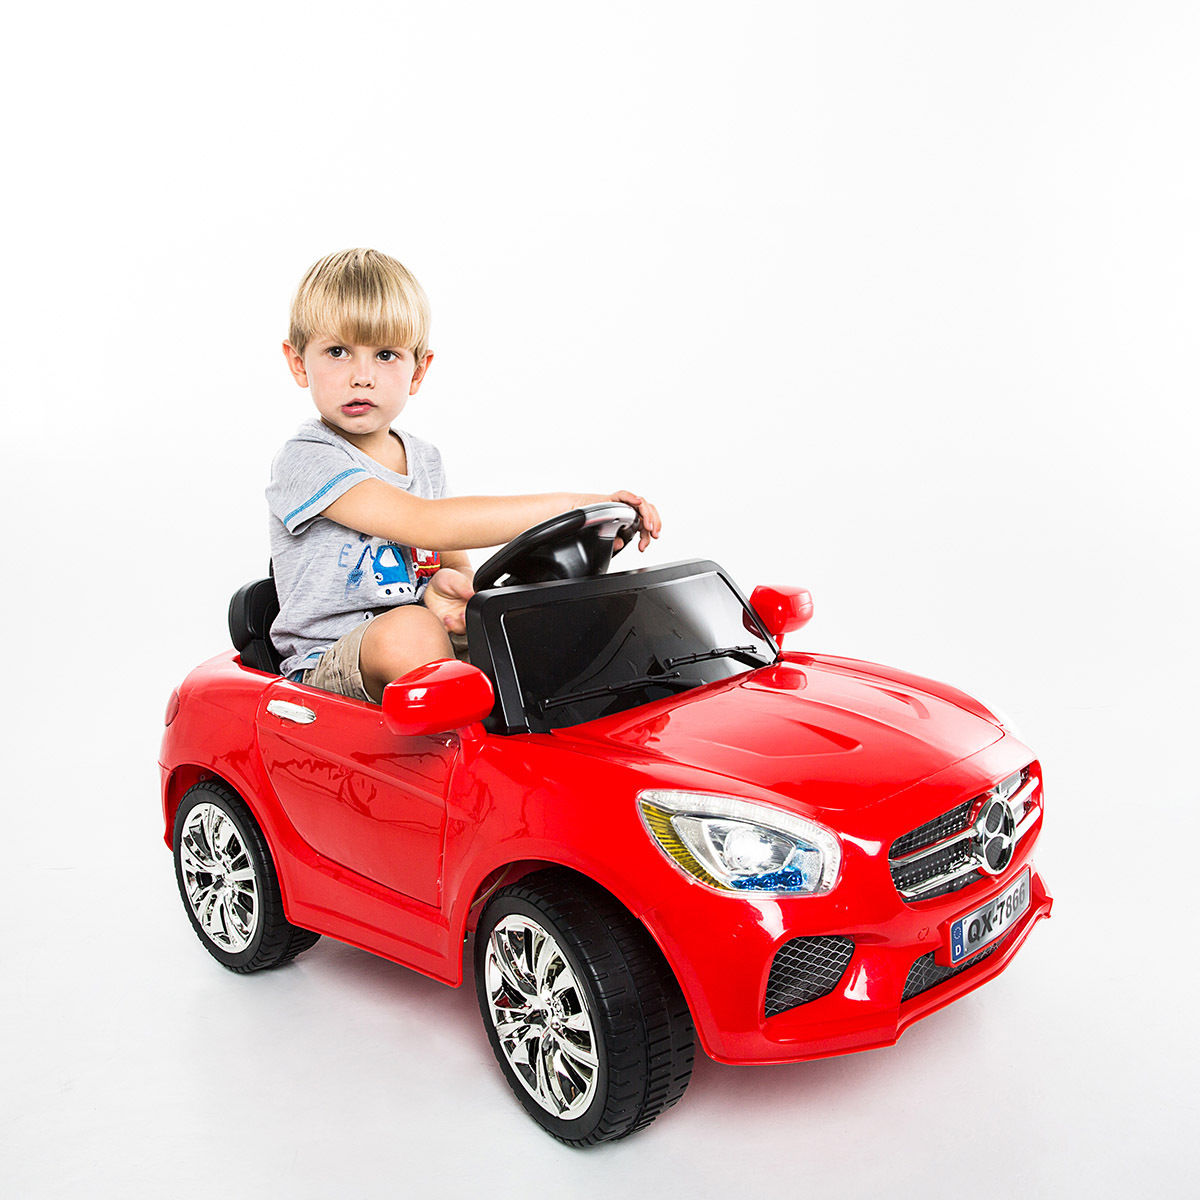 Costway 6V Kids Ride On Car RC Remote Control Battery Powered w/ LED Lights MP3 Red